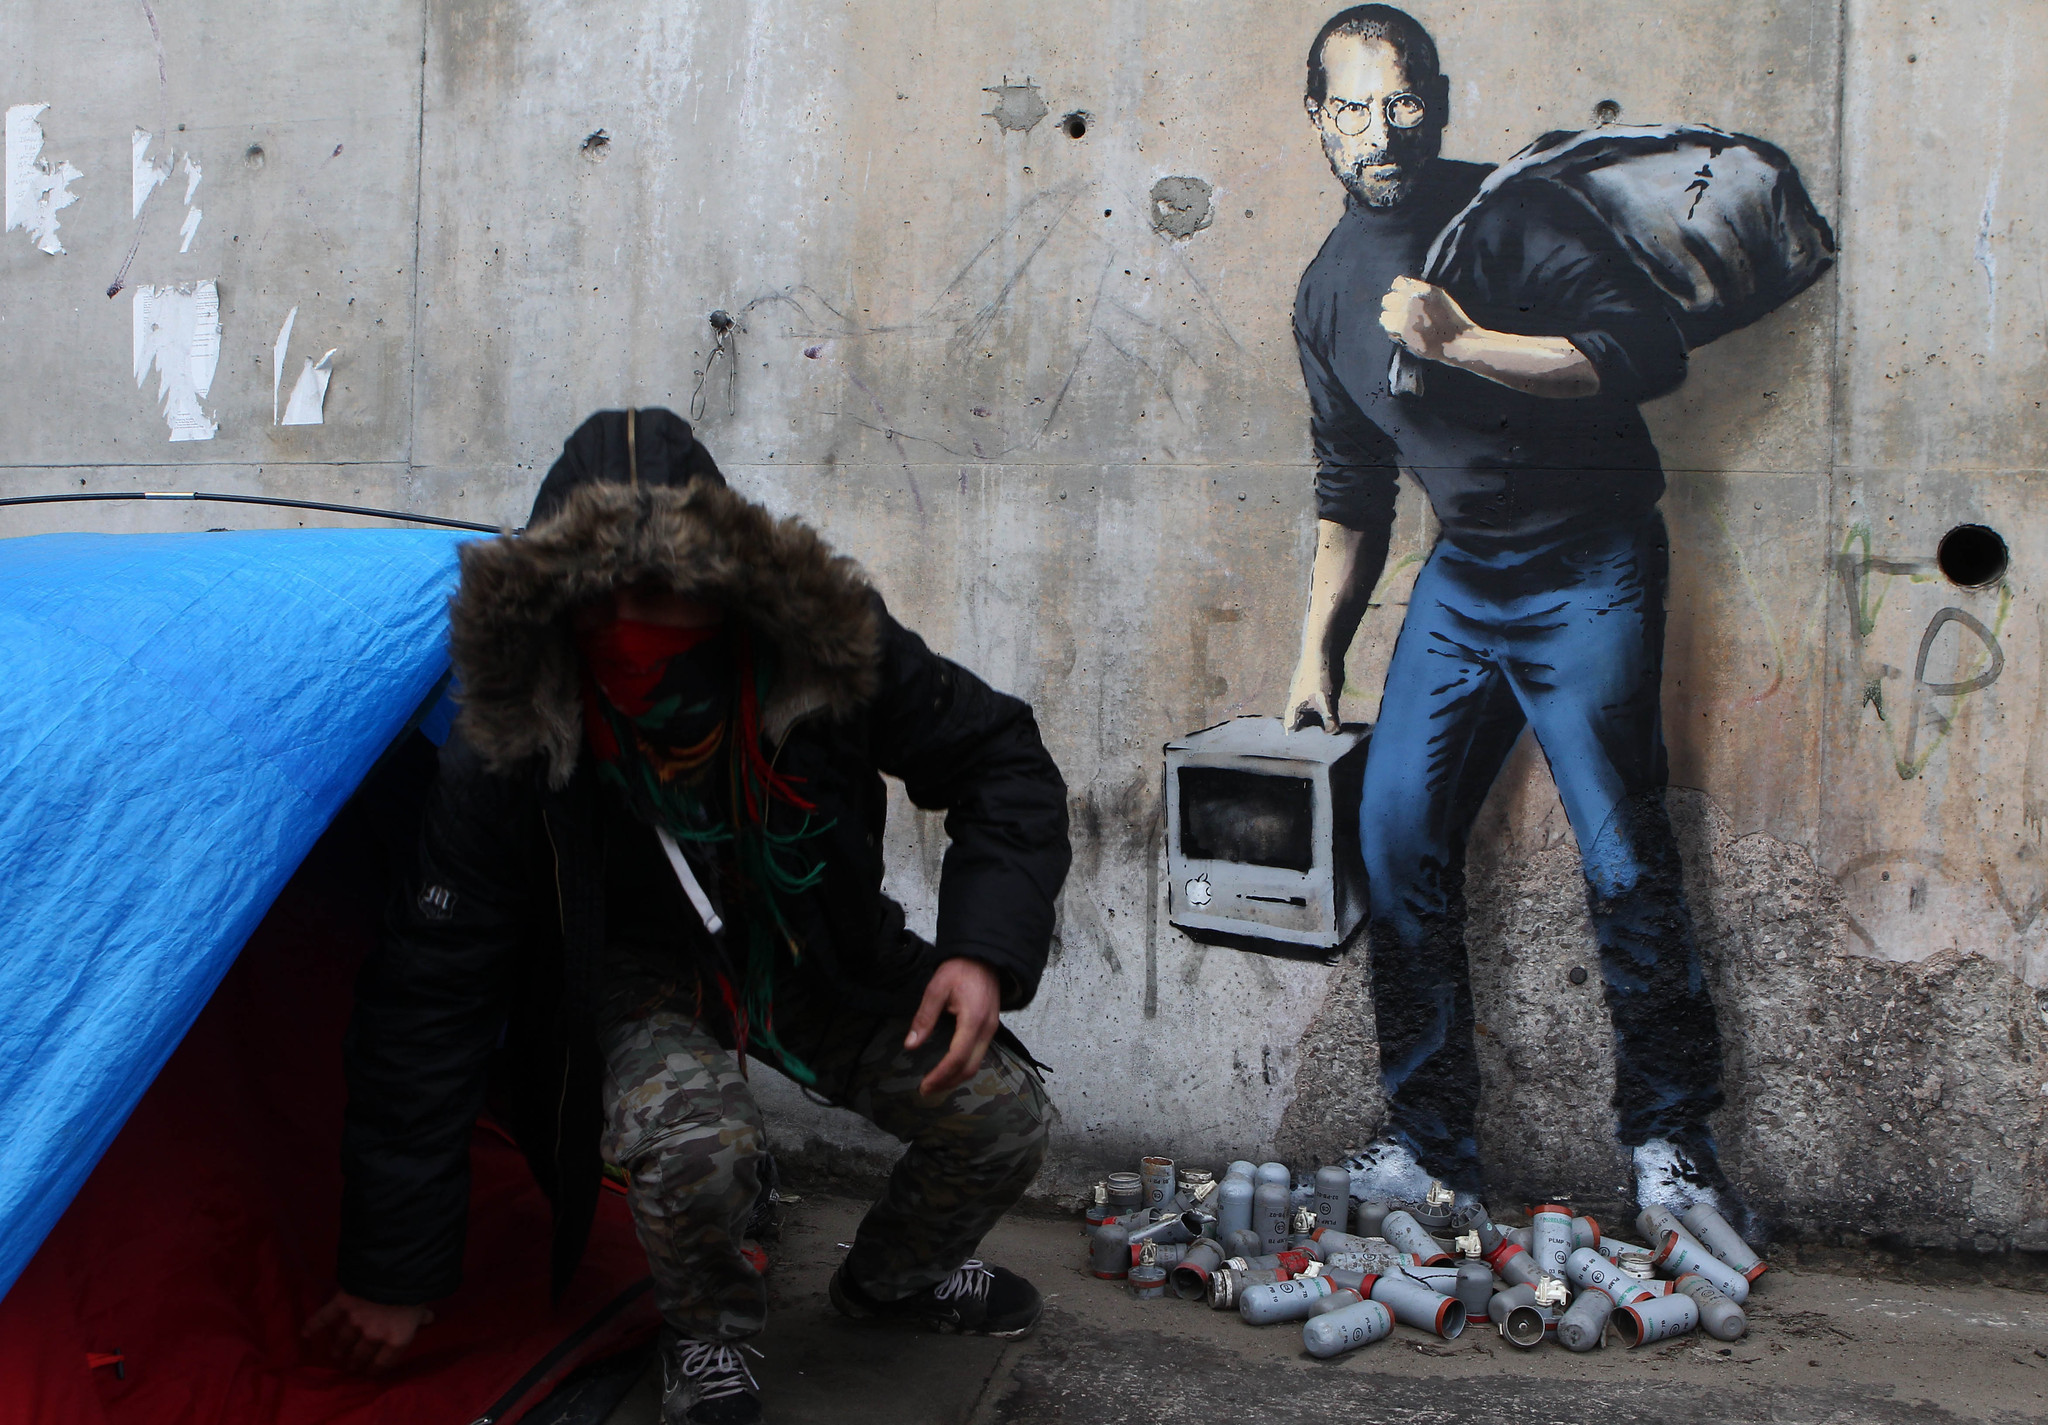 3d Money Wallpaper Banksy S Identity May Have Been Revealed Chicago Tribune